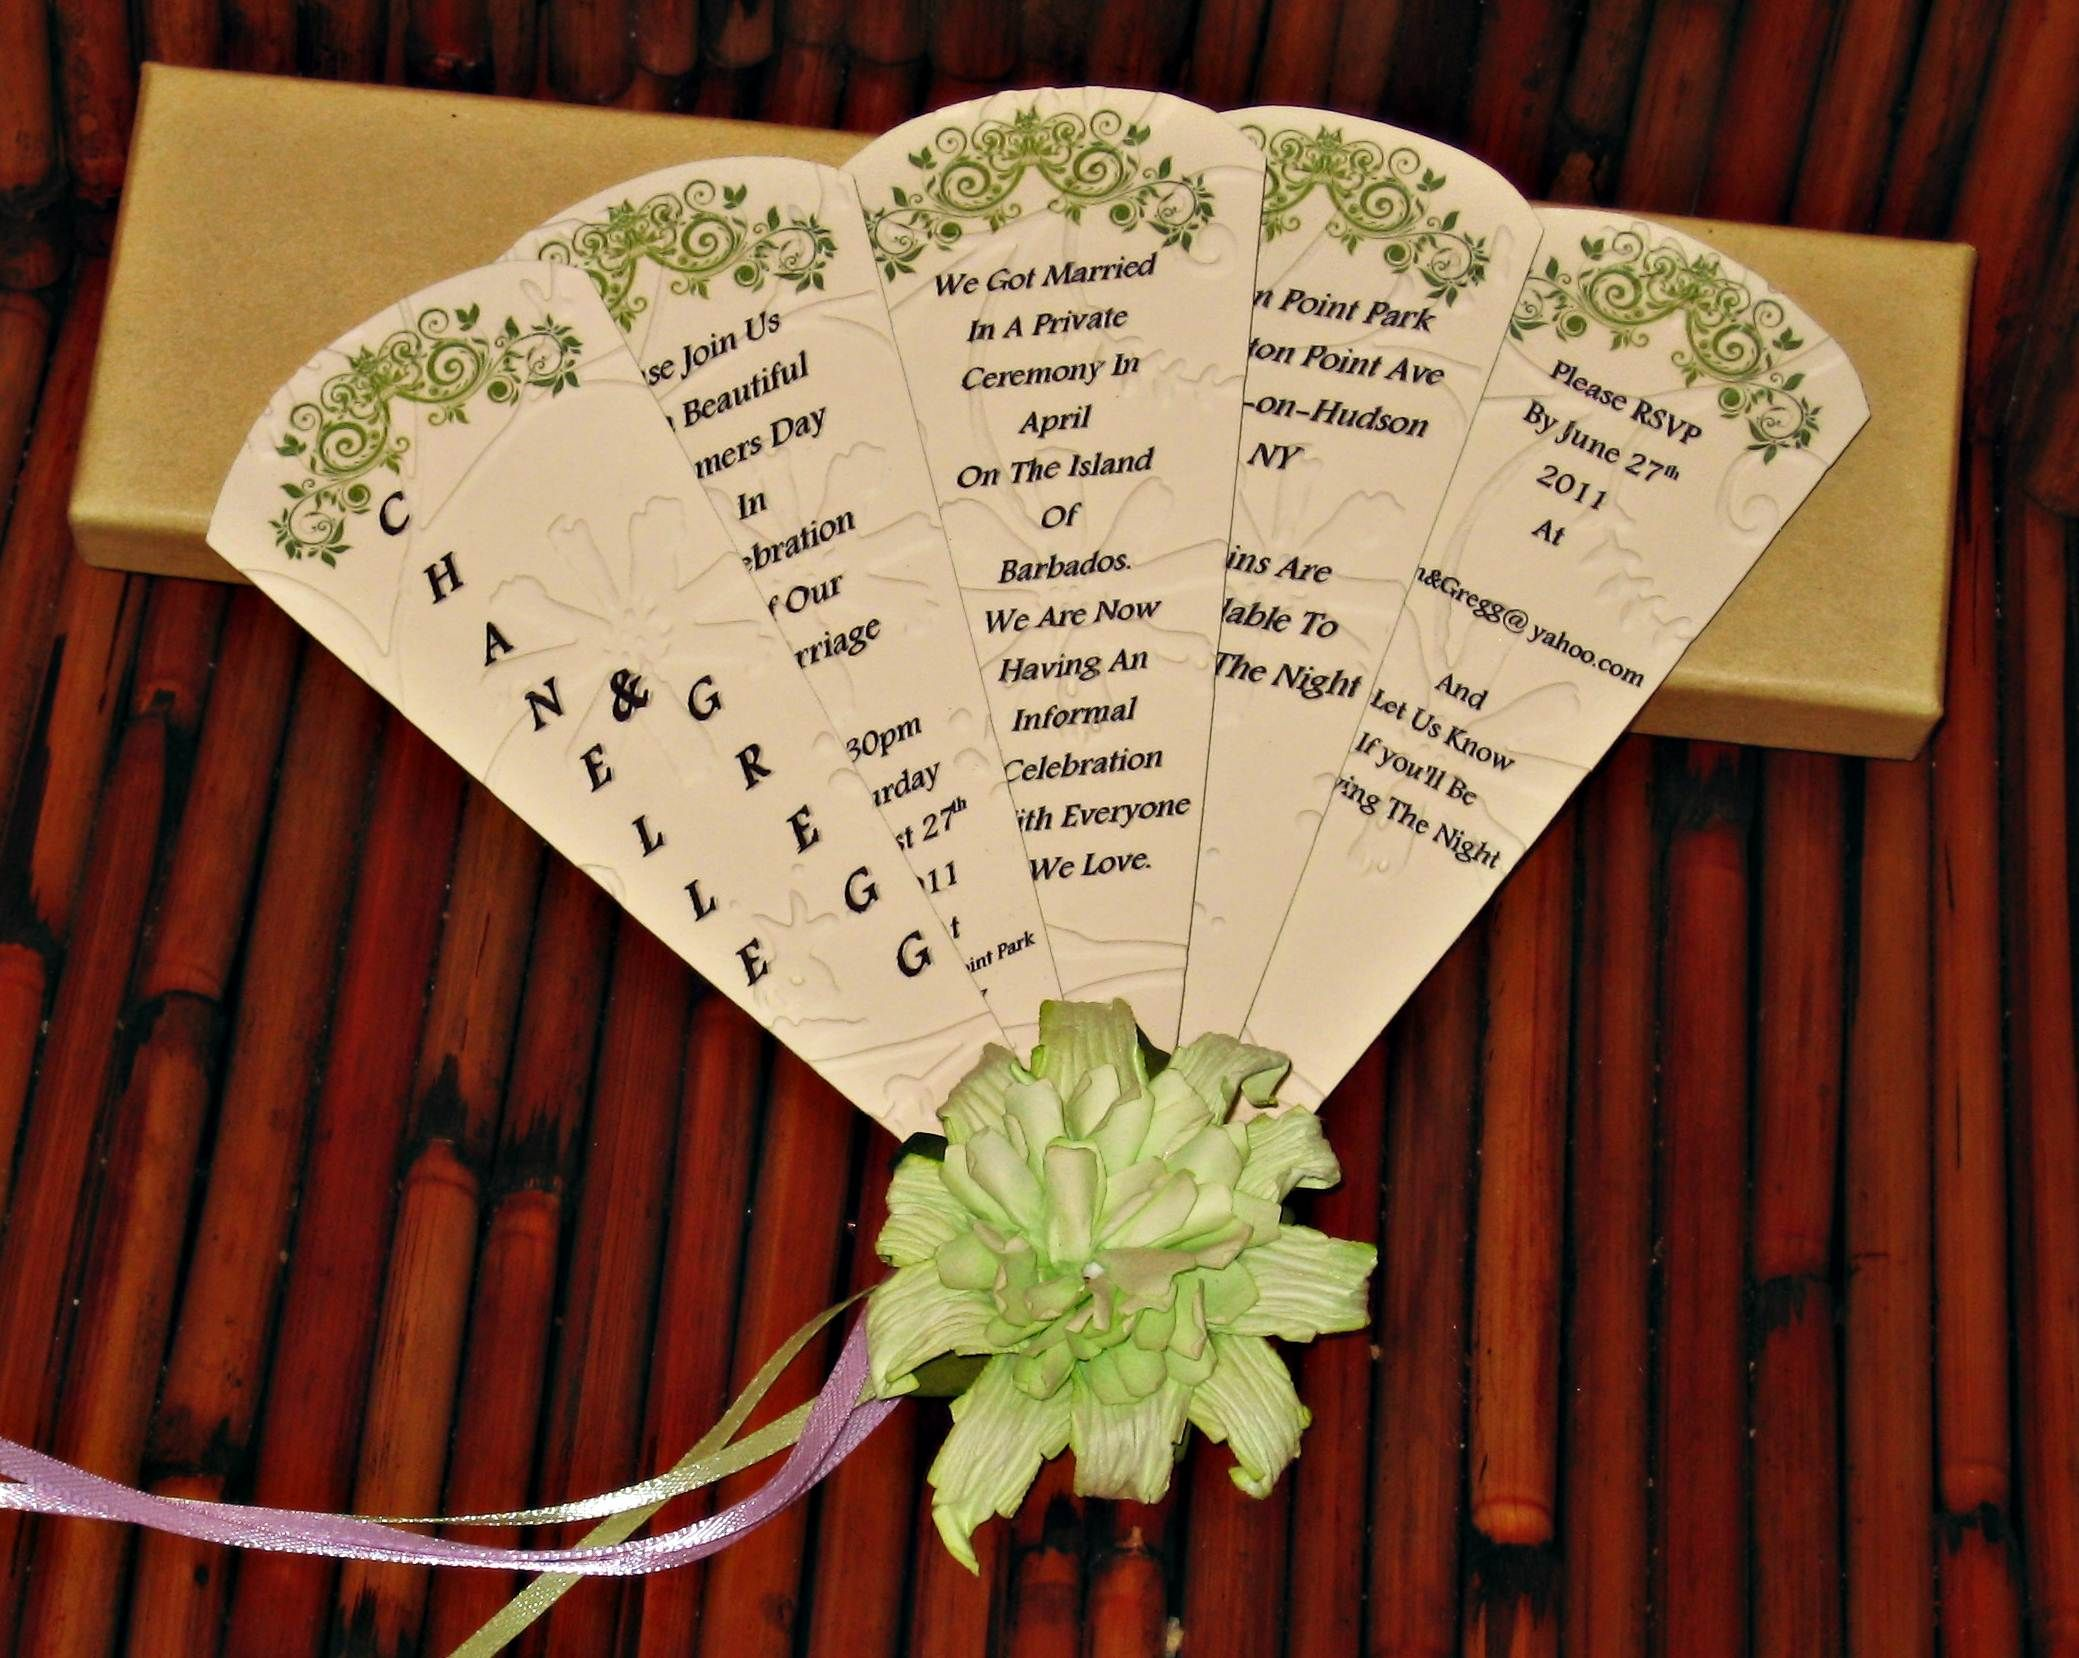 Informal Wedding Fan Card Invitation Pinterest Wedding Invitations Etsy Wedding Invitations Wedding Invitations